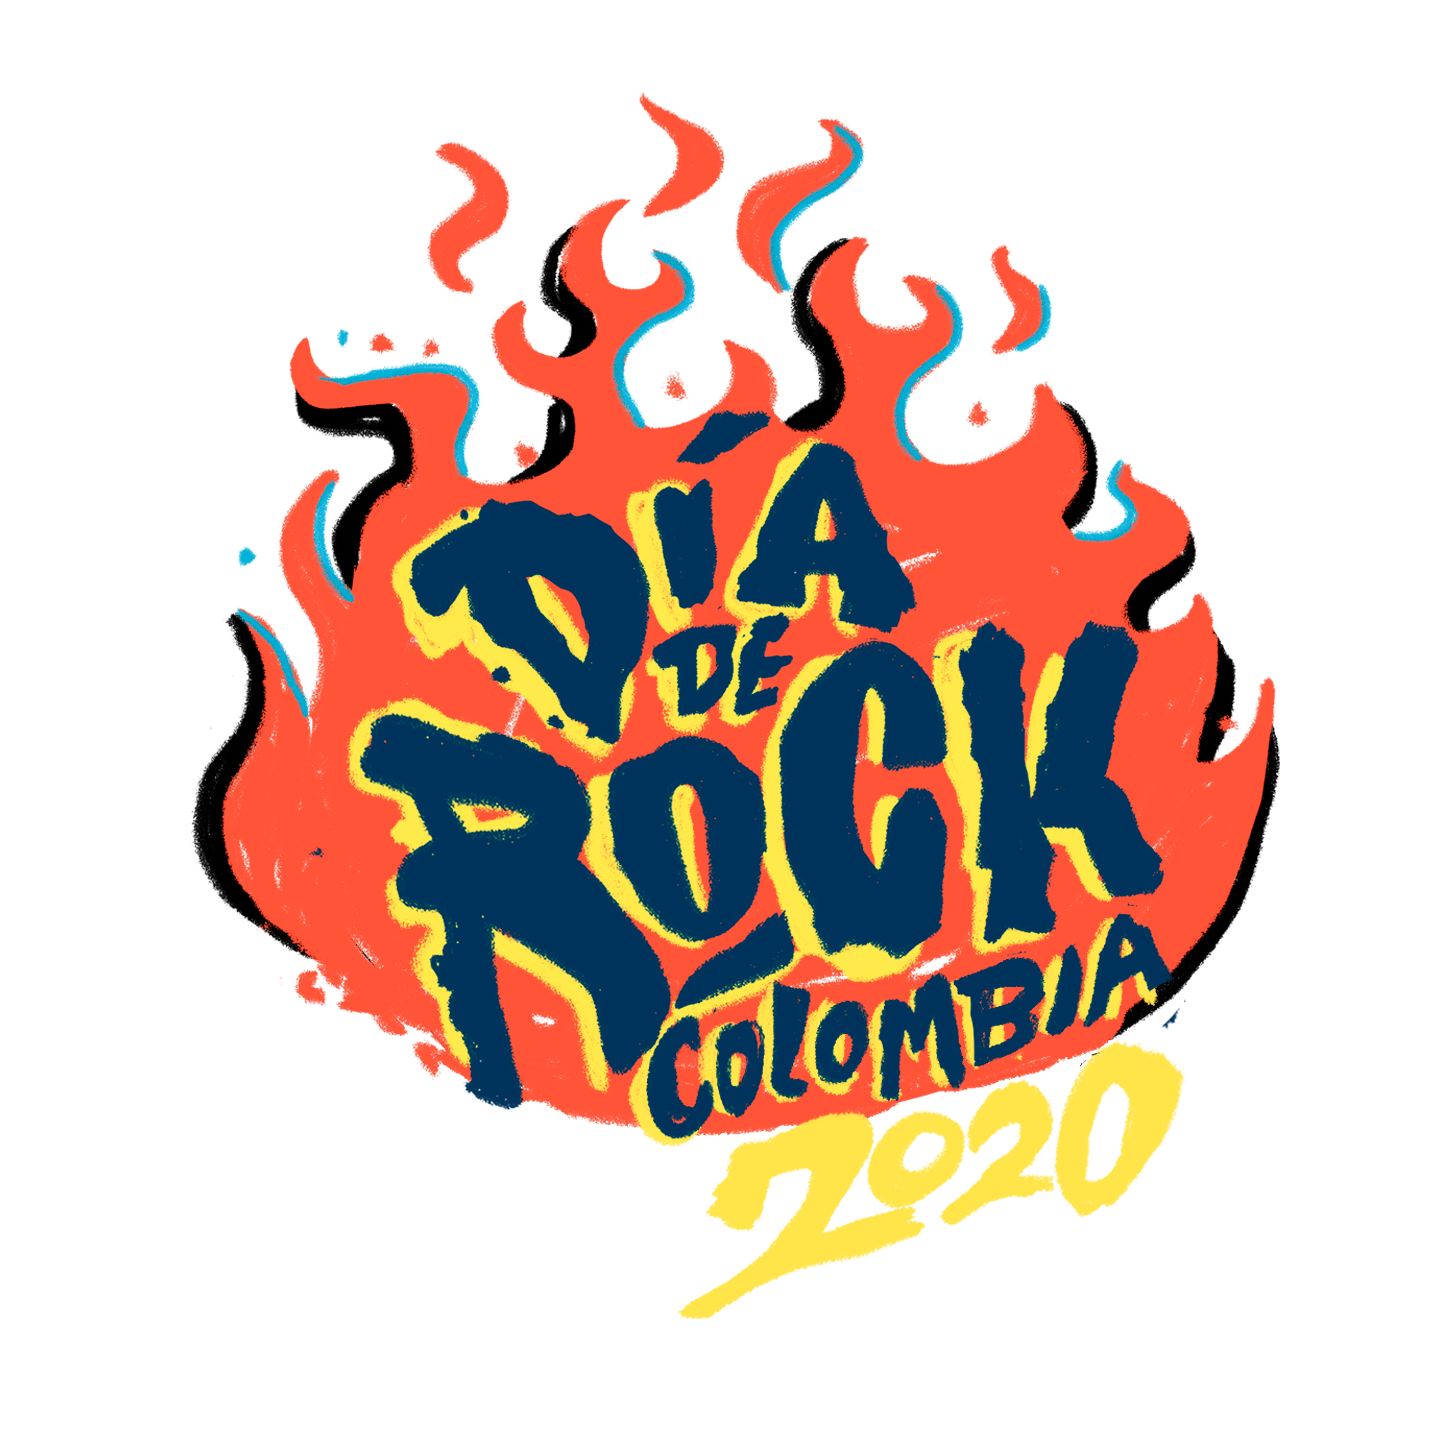 Dia de Rock Colombia